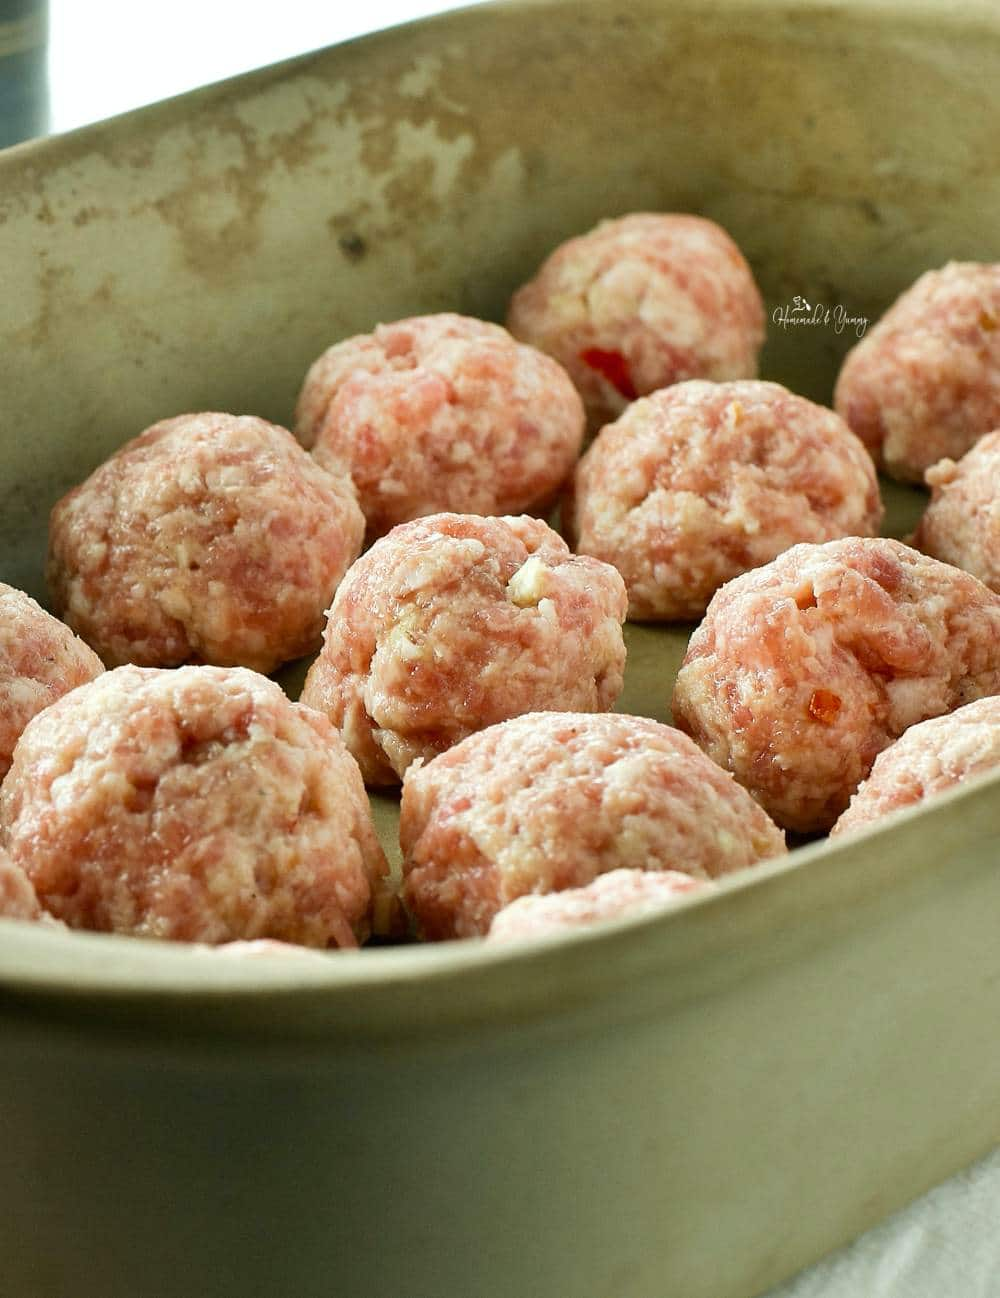 Pork meatballs in a baking dish ready to go into the oven.